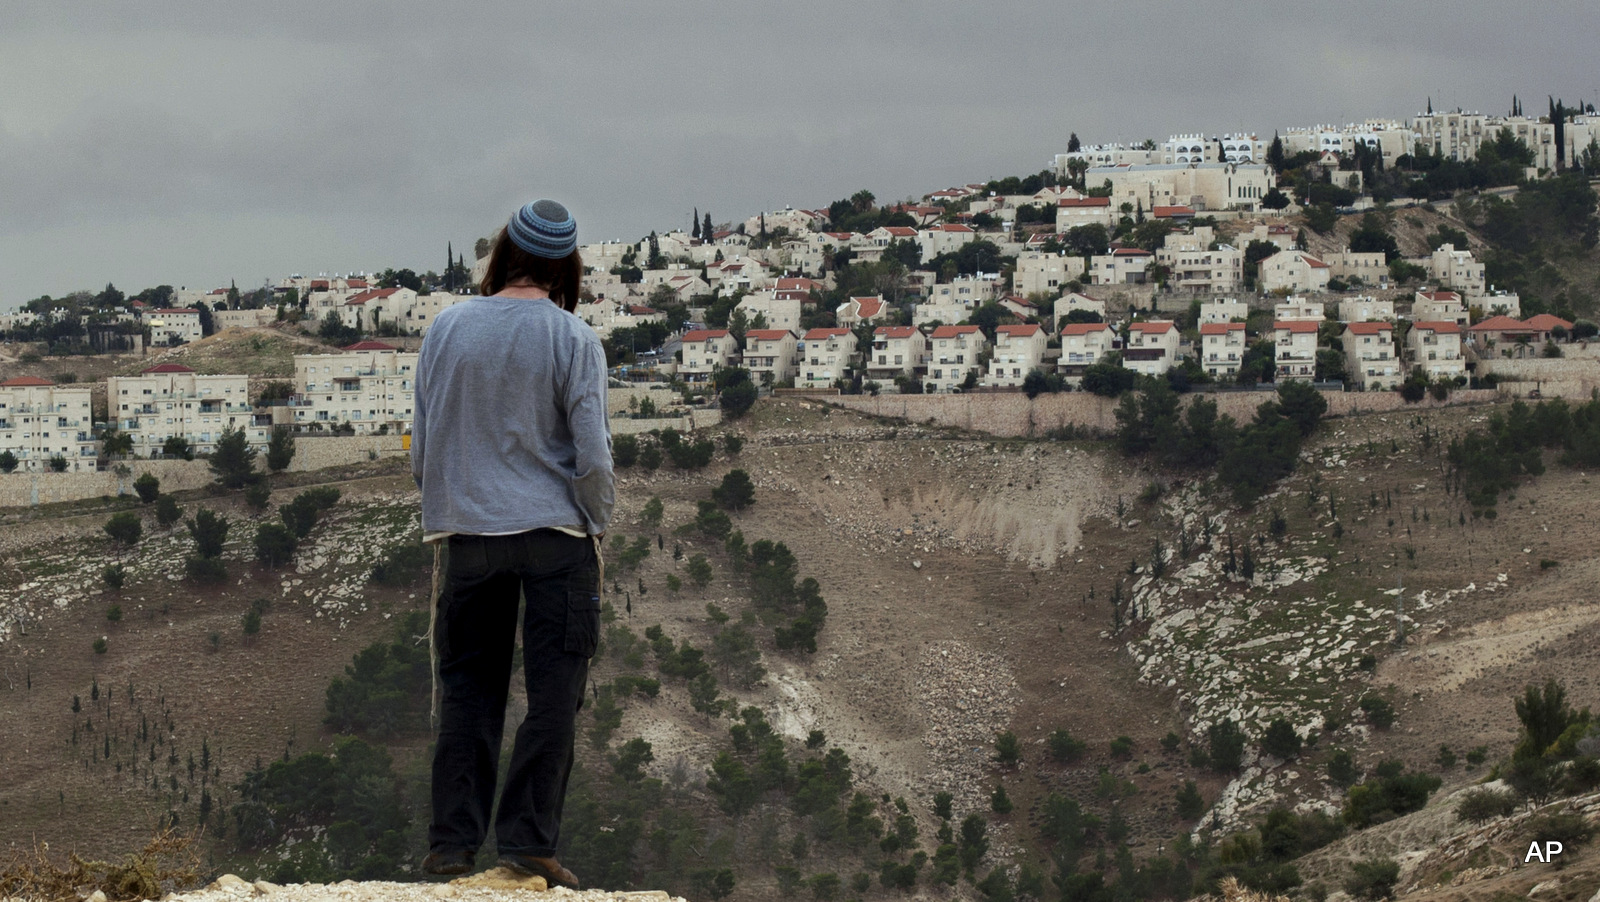 The US is Paving the Way to Israel's Annexation of the West Bank